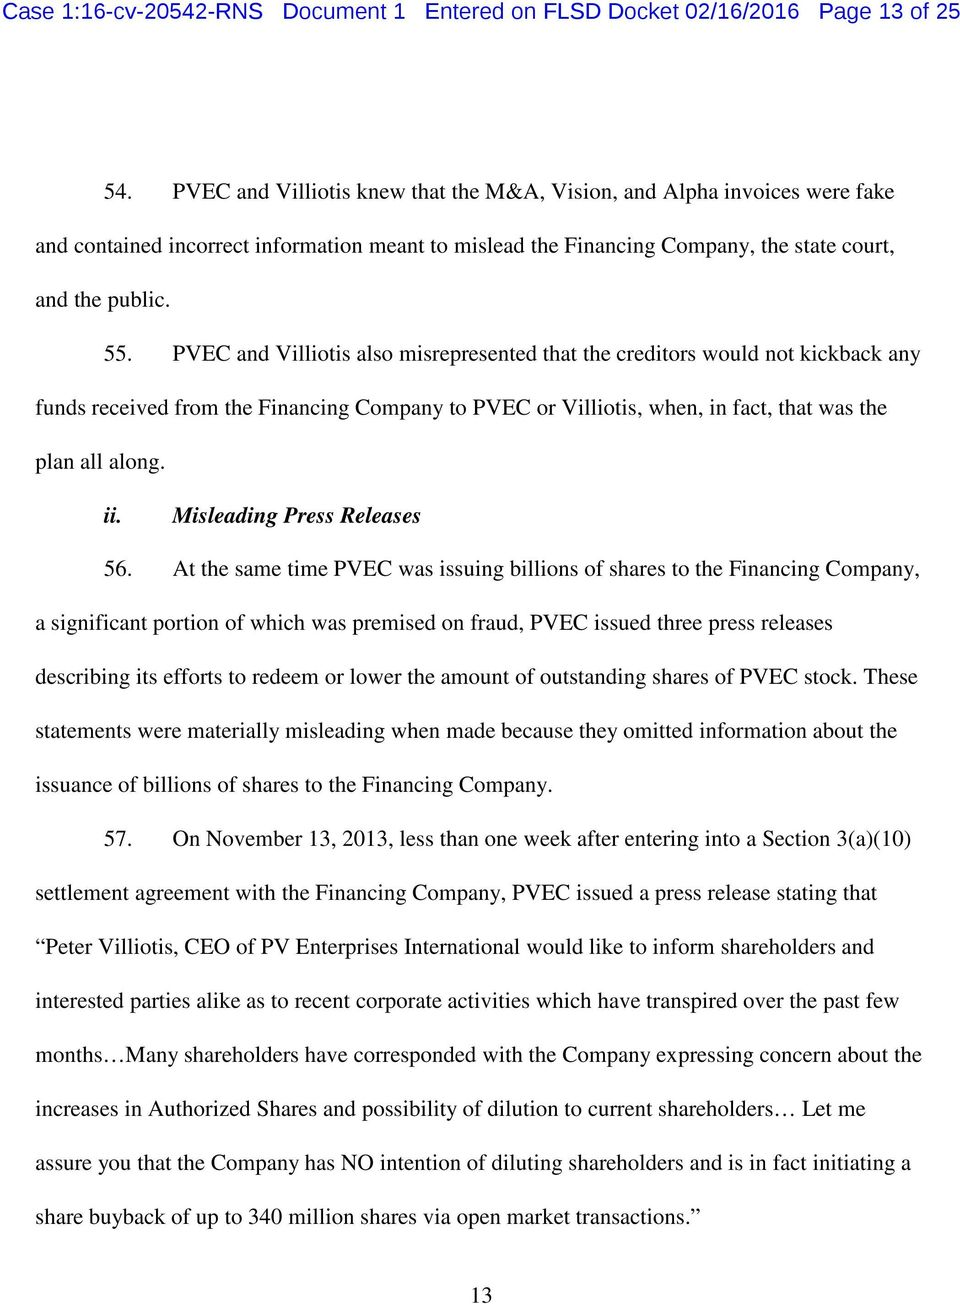 PVEC and Villiotis also misrepresented that the creditors would not kickback any funds received from the Financing Company to PVEC or Villiotis, when, in fact, that was the plan all along. ii.